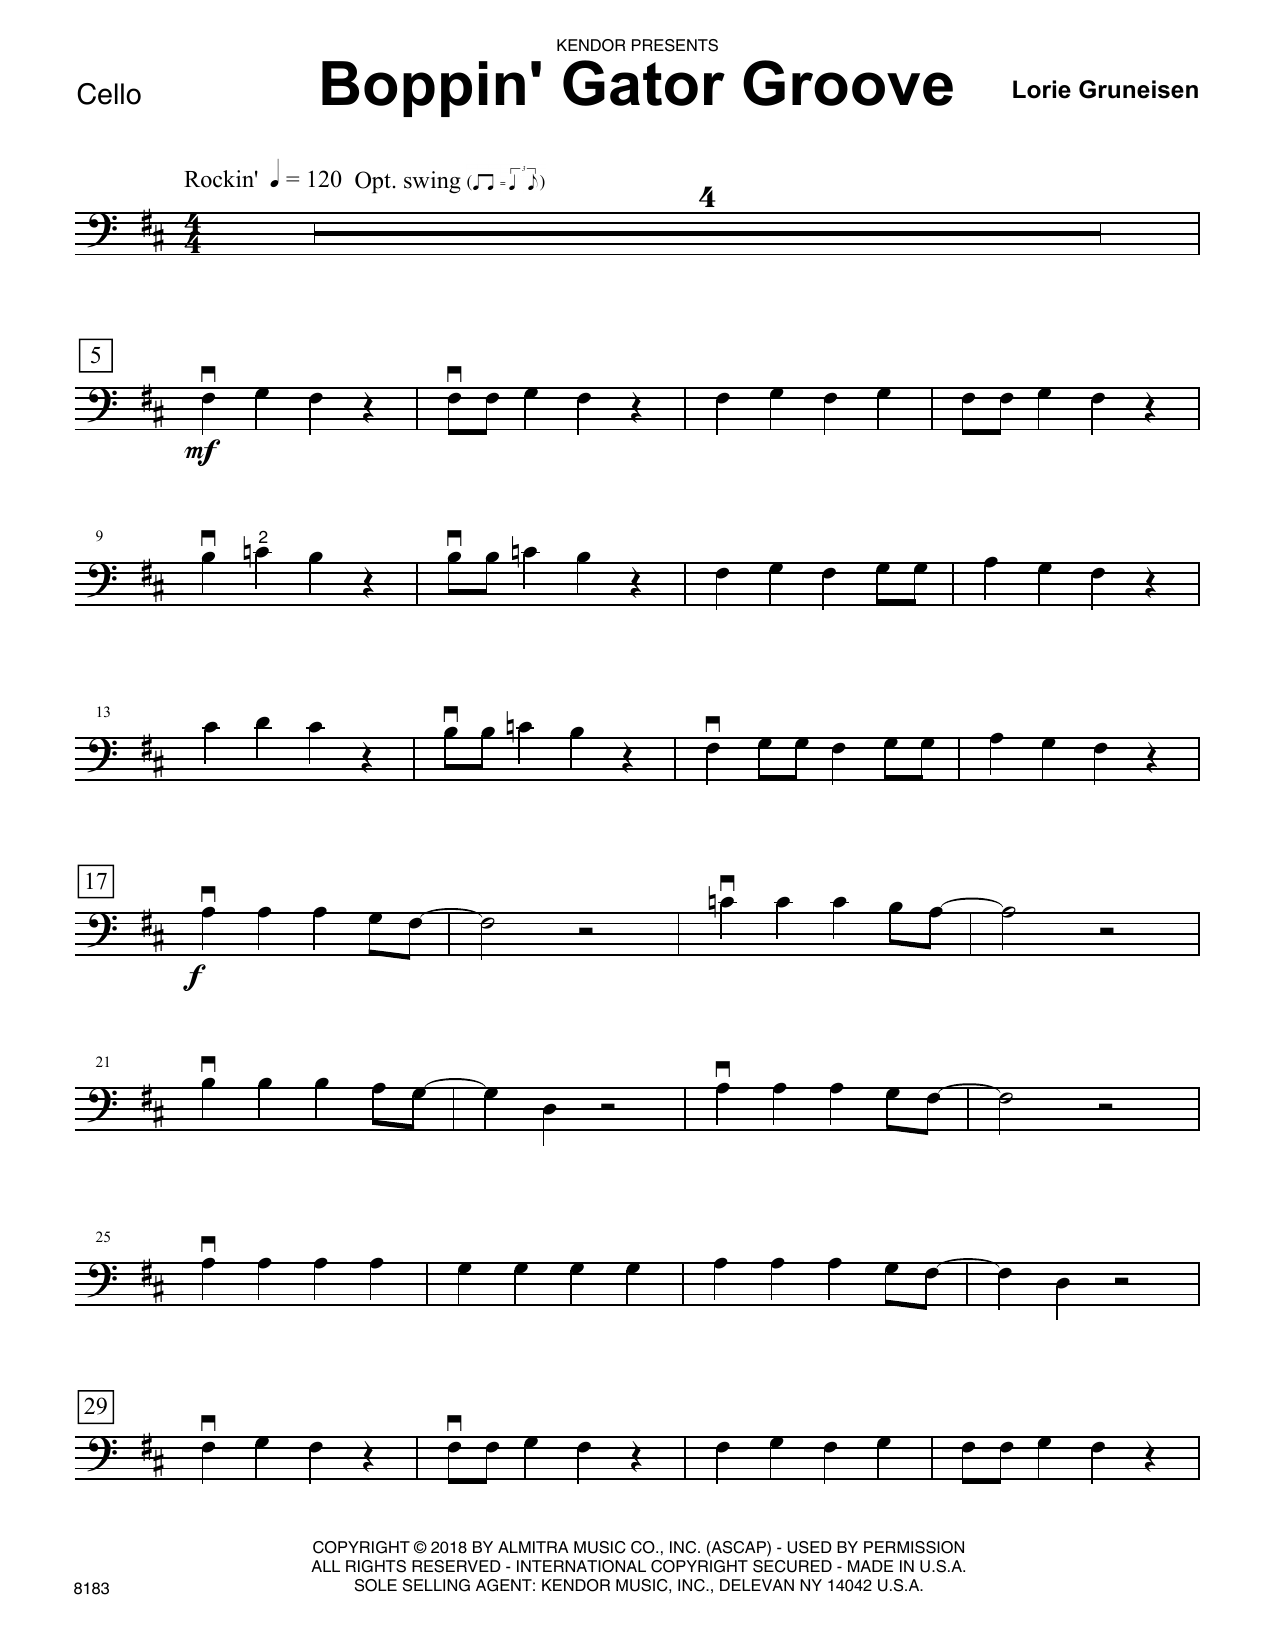 Lorie Gruneisen Boppin' Gator Groove - Cello sheet music preview music notes and score for Orchestra including 2 page(s)